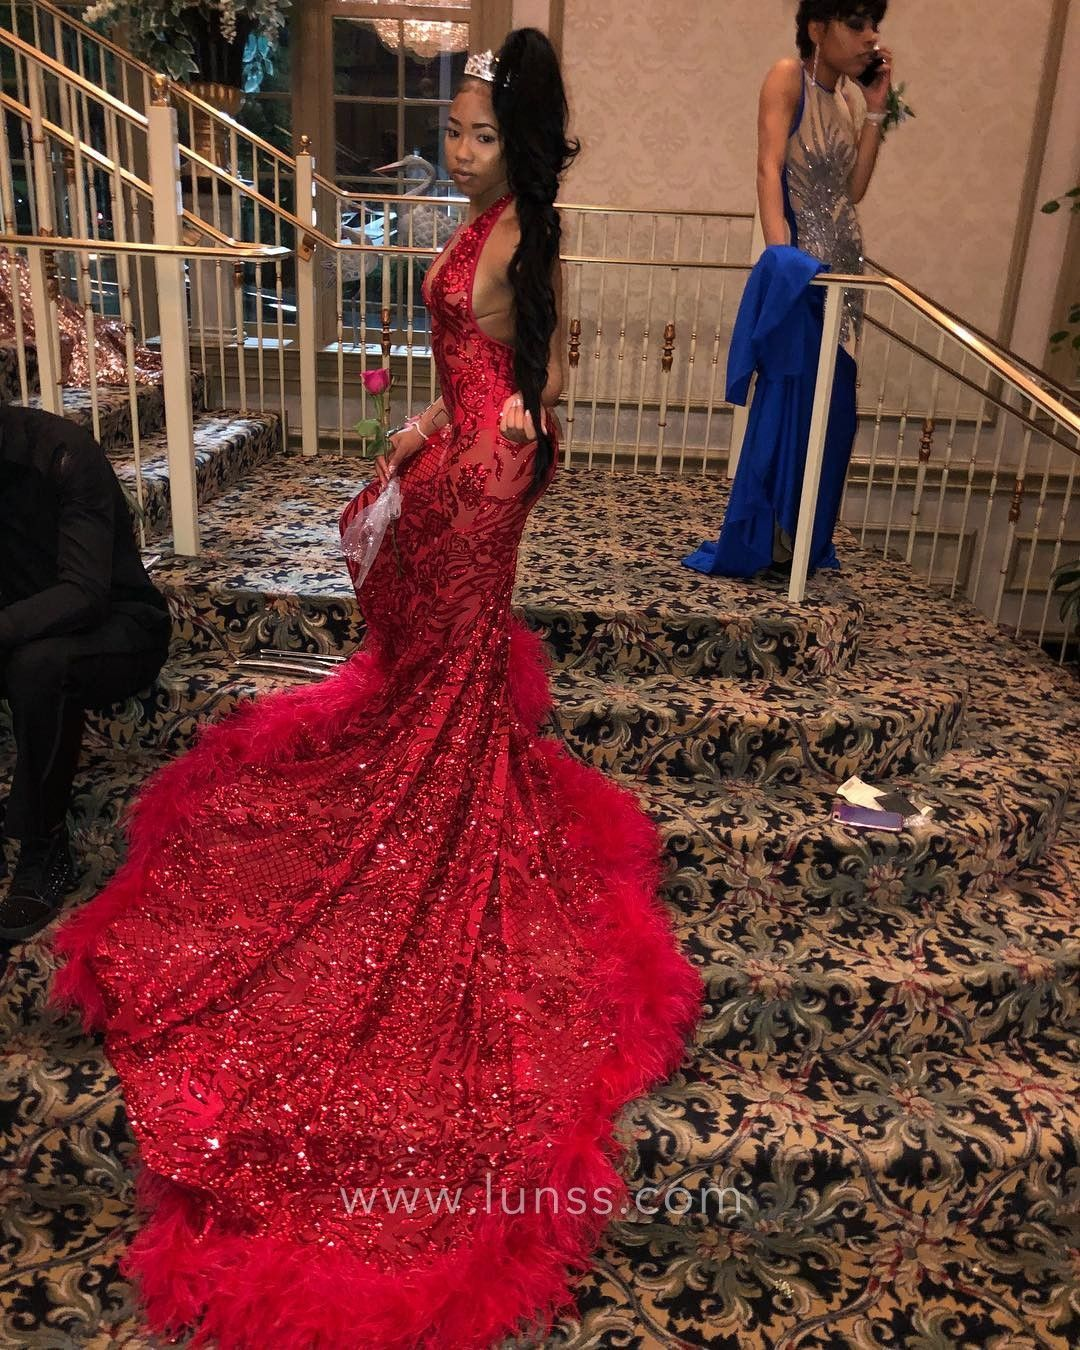 Gorgeous red sequin African American floor length long mermaid prom dress  with feather hemline long train 7de4fc3810e4